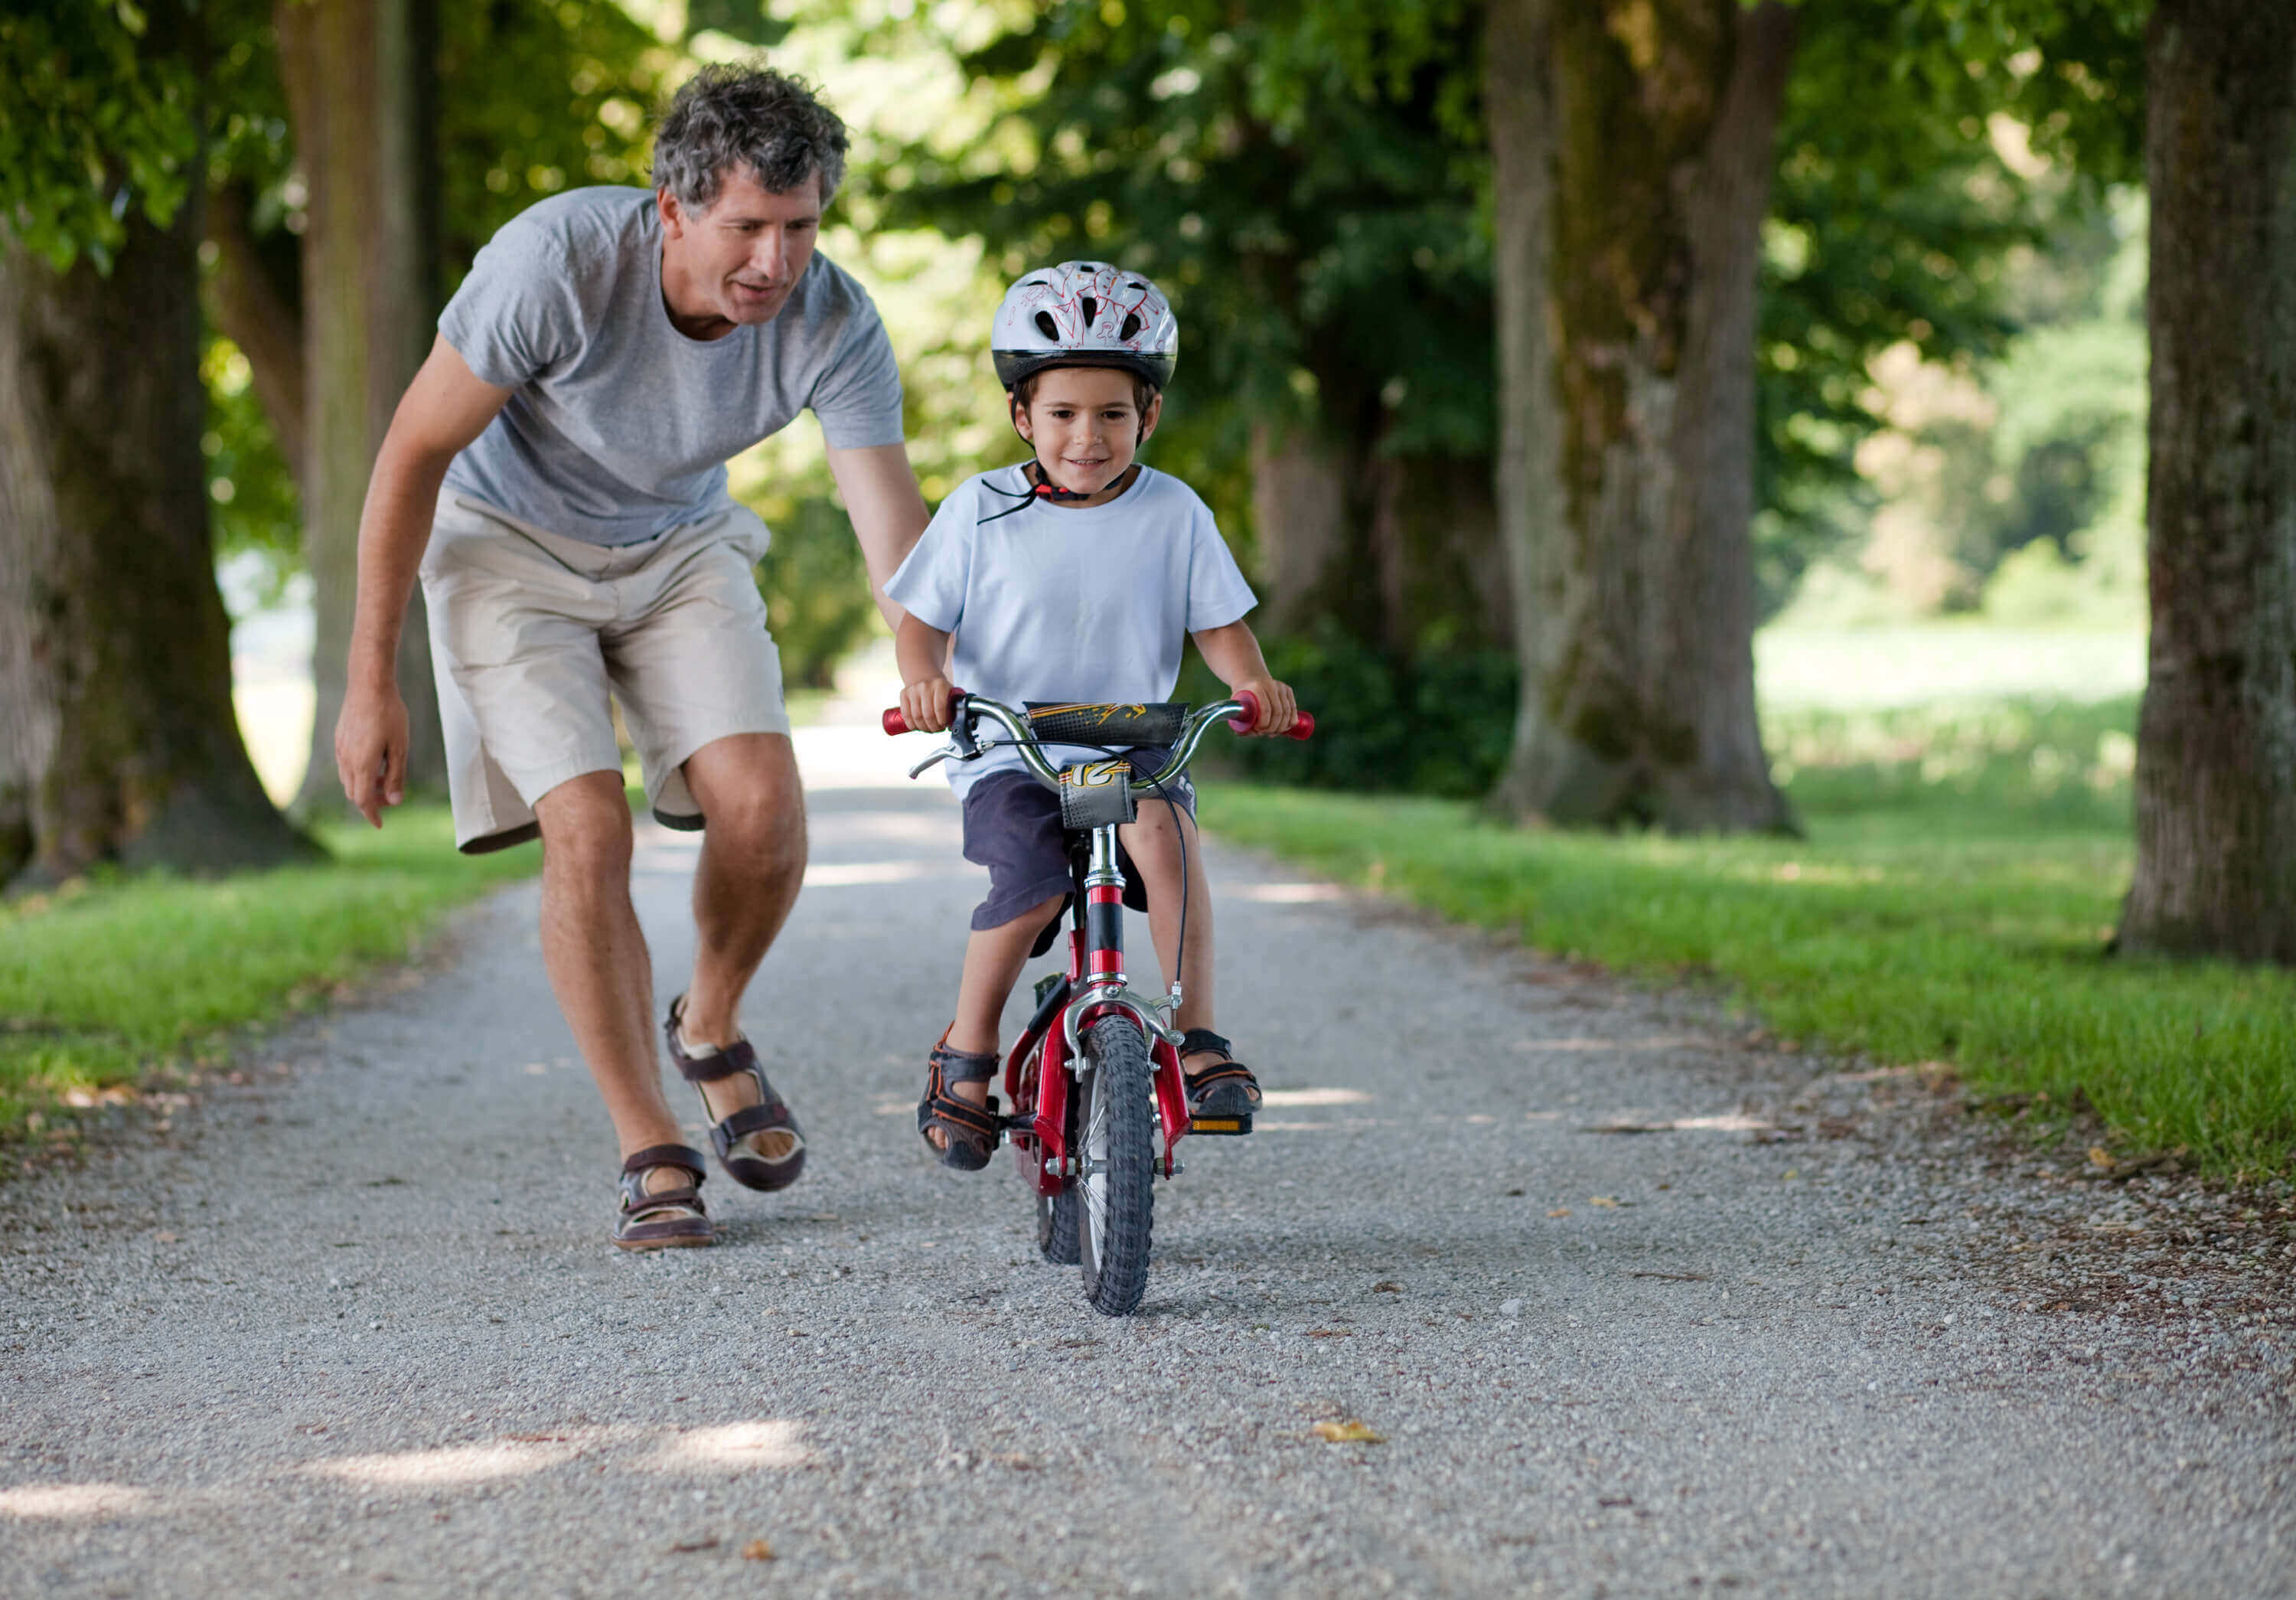 Child riding a bike, while father guides him